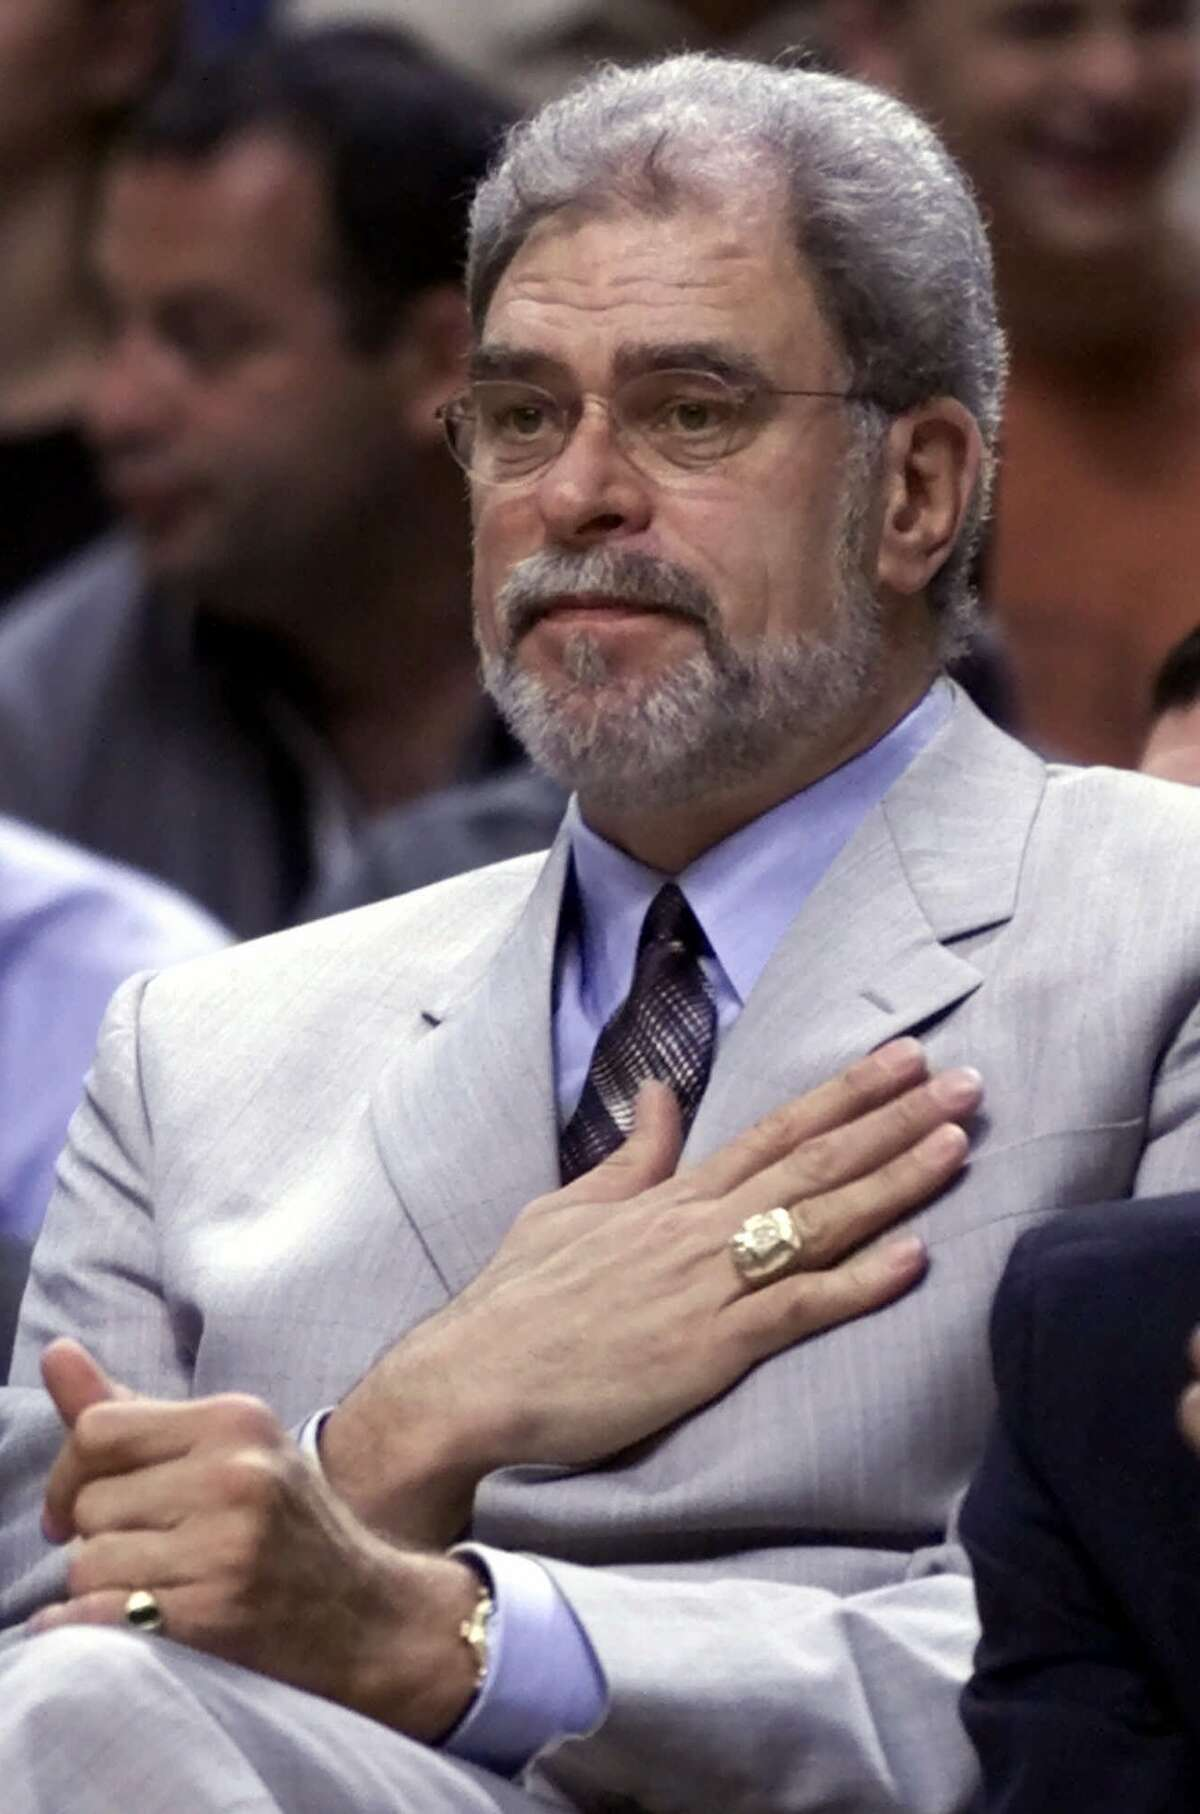 Los Angeles Lakers head coach Phil Jackson puts his hand over his heart as he watchs third quarter action against the Indiana Pacers in game five of the NBA Finals in Indianapolis, Firday, June 16, 2000. (AP Photo/Michael Conroy)